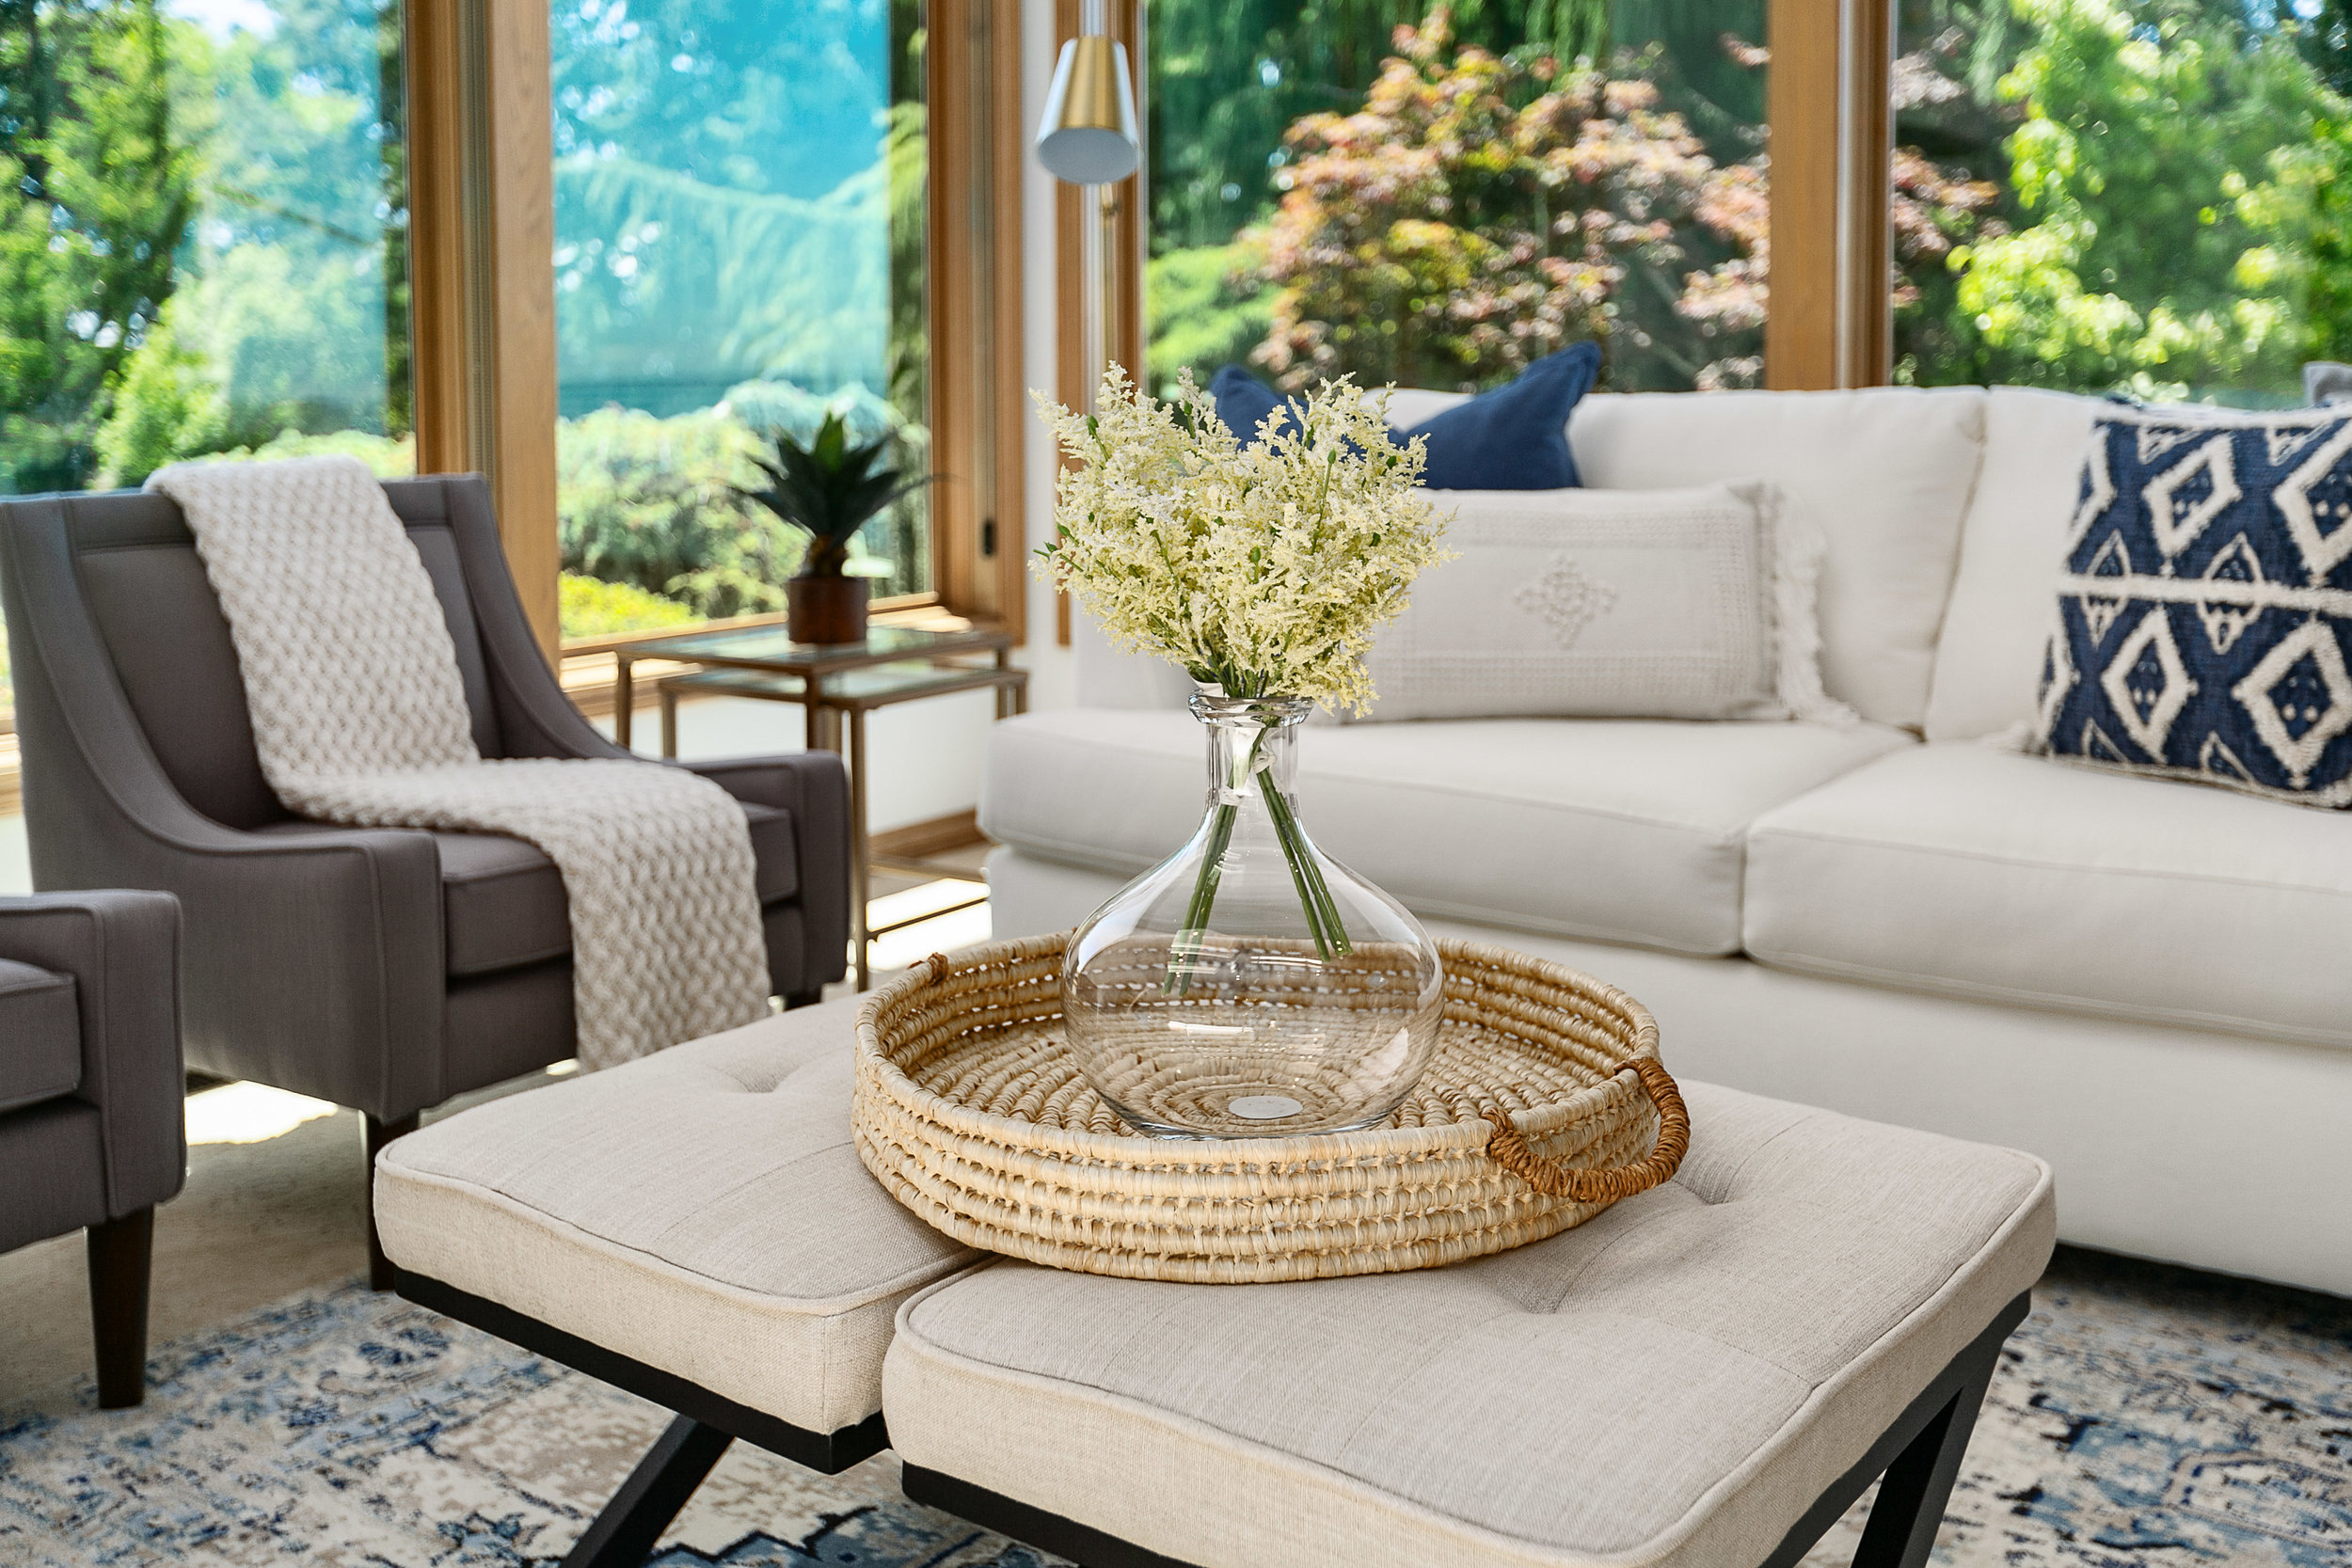 edmonds interior design